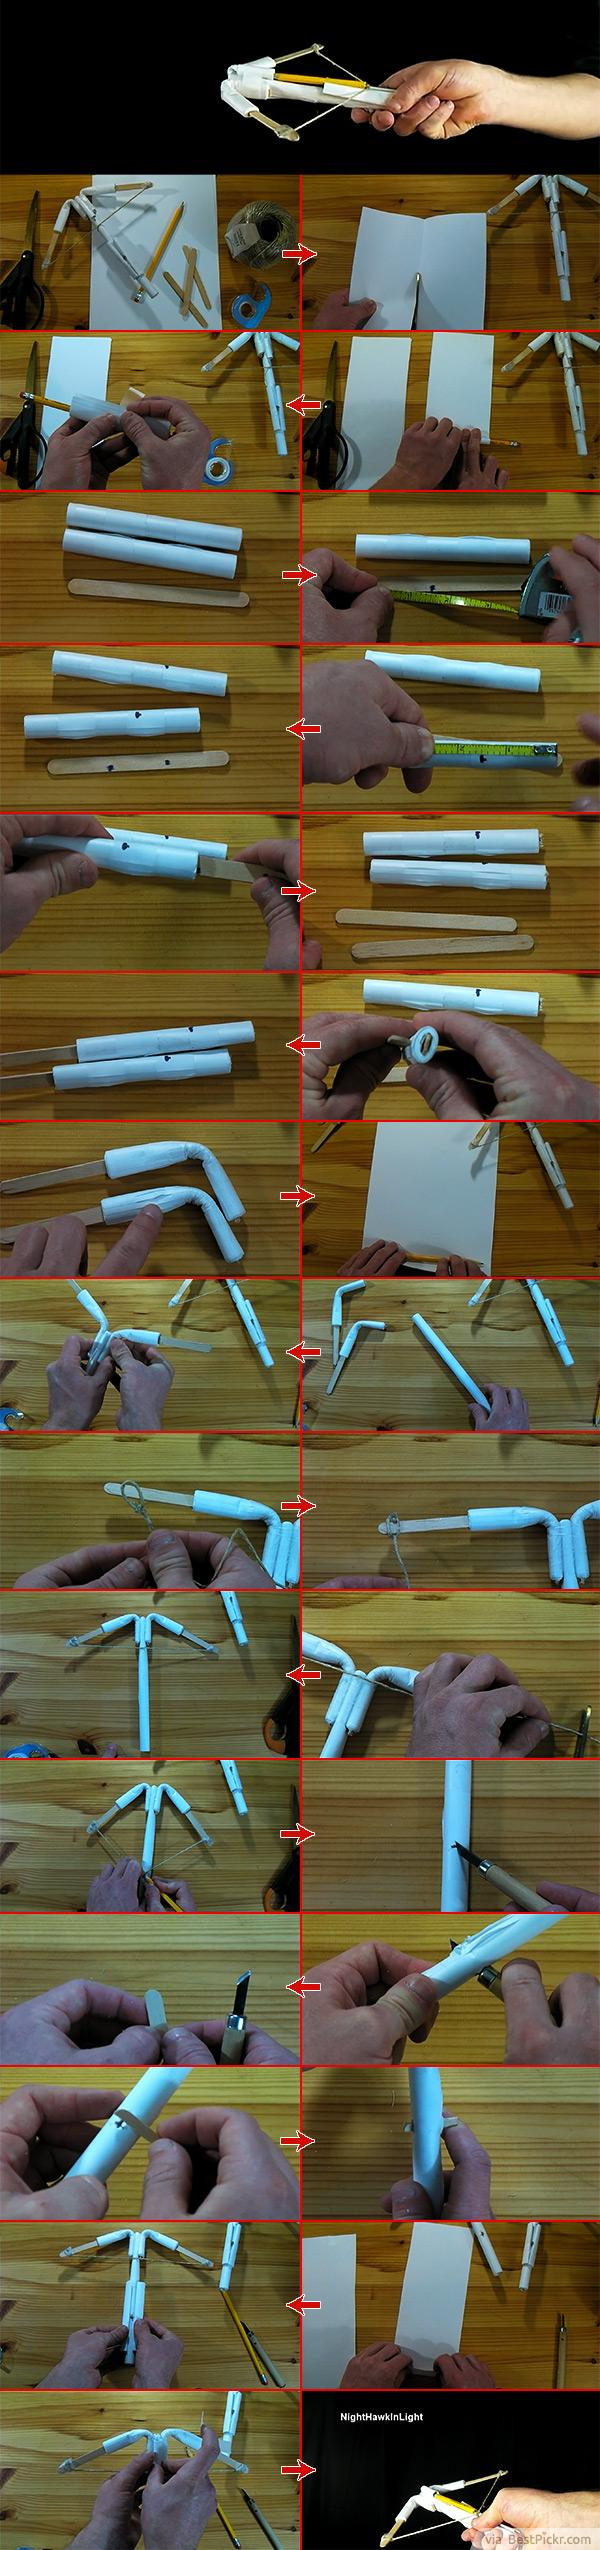 How to make a Paper Crossbow - (Mini Crossbow) - YouTube | 2550x600